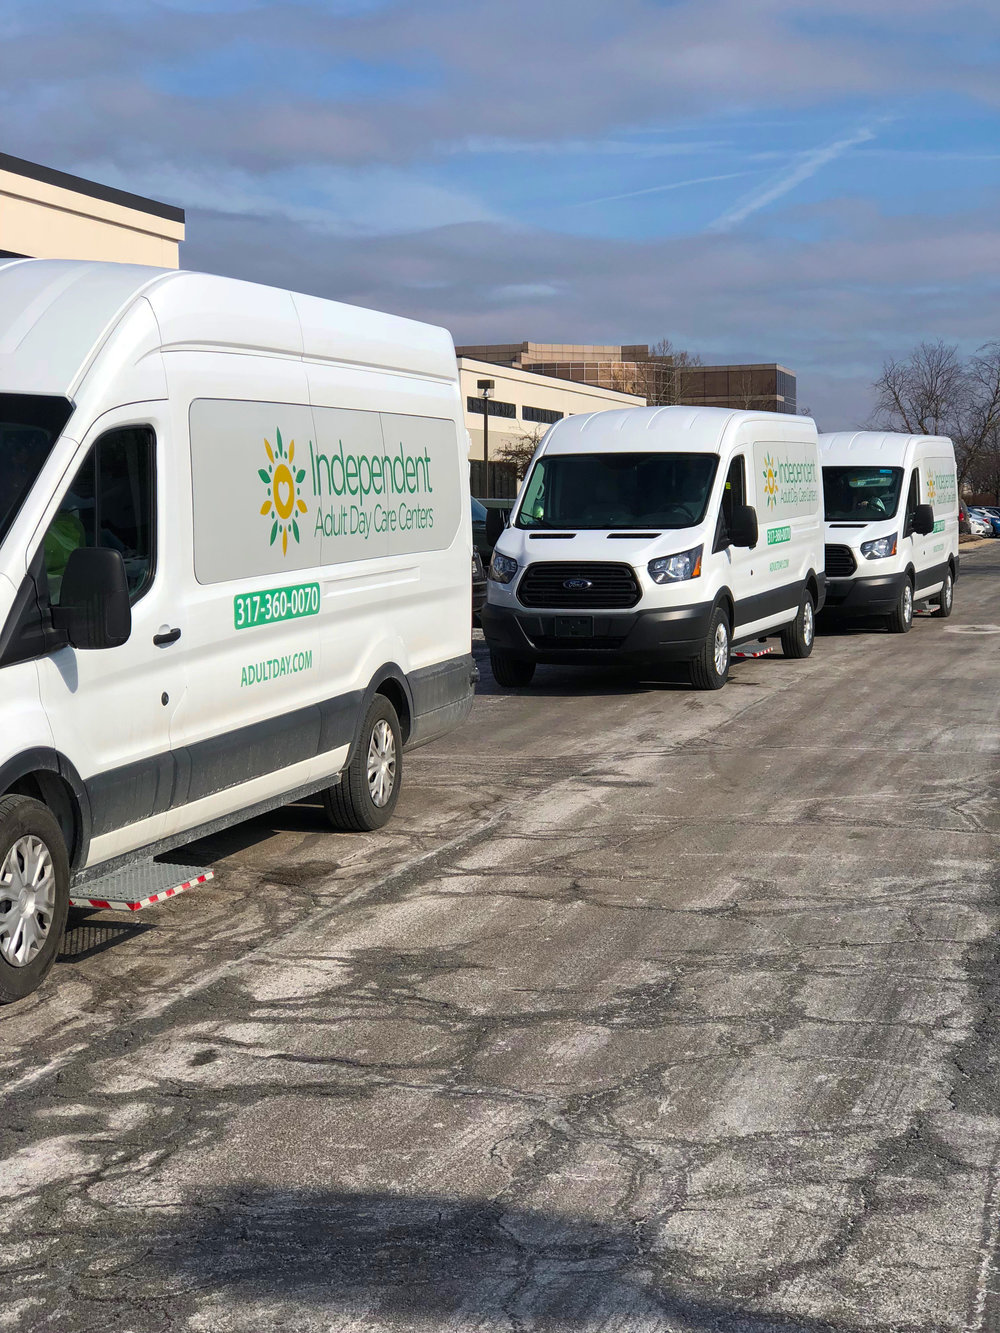 Your chariot awaits! - Did you know we provide door to door transportation from your home to ours? We're even happy to help with that prearranged medical appointment. We'll take you there, and send a nurse along with you.